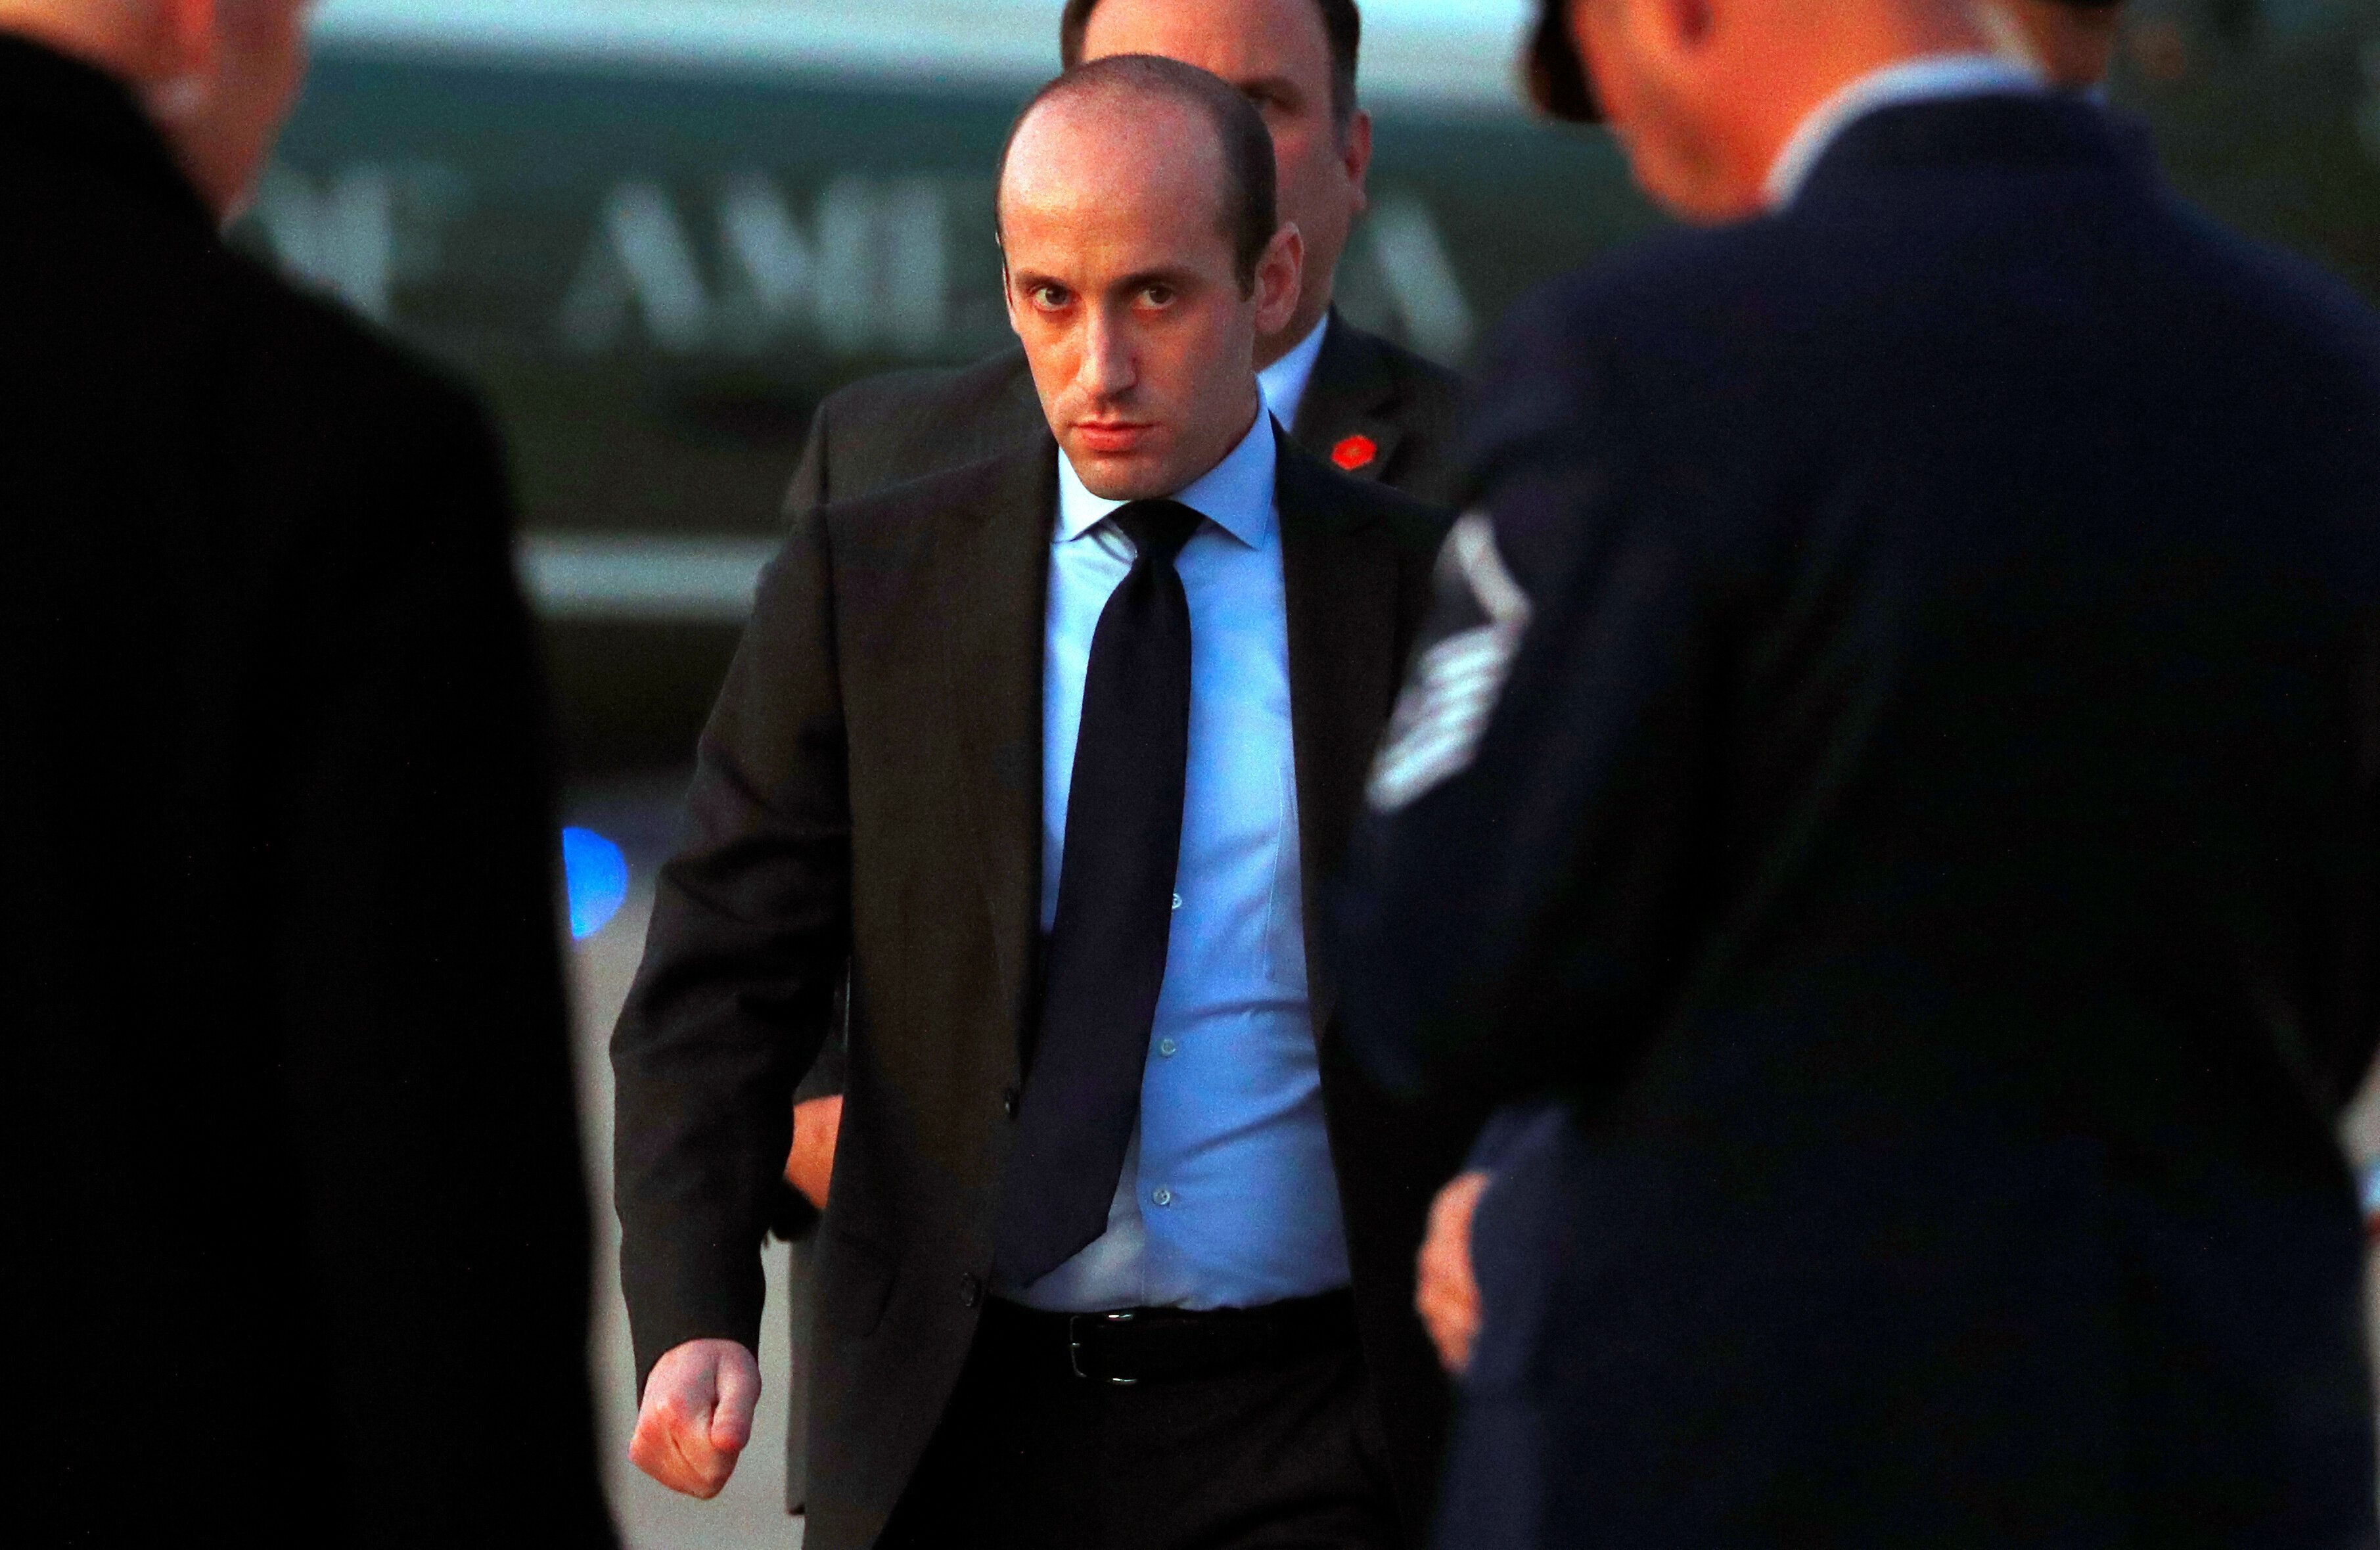 Stephen Miller Targeted Marco Rubio In Breitbart Coverage, Emails Show